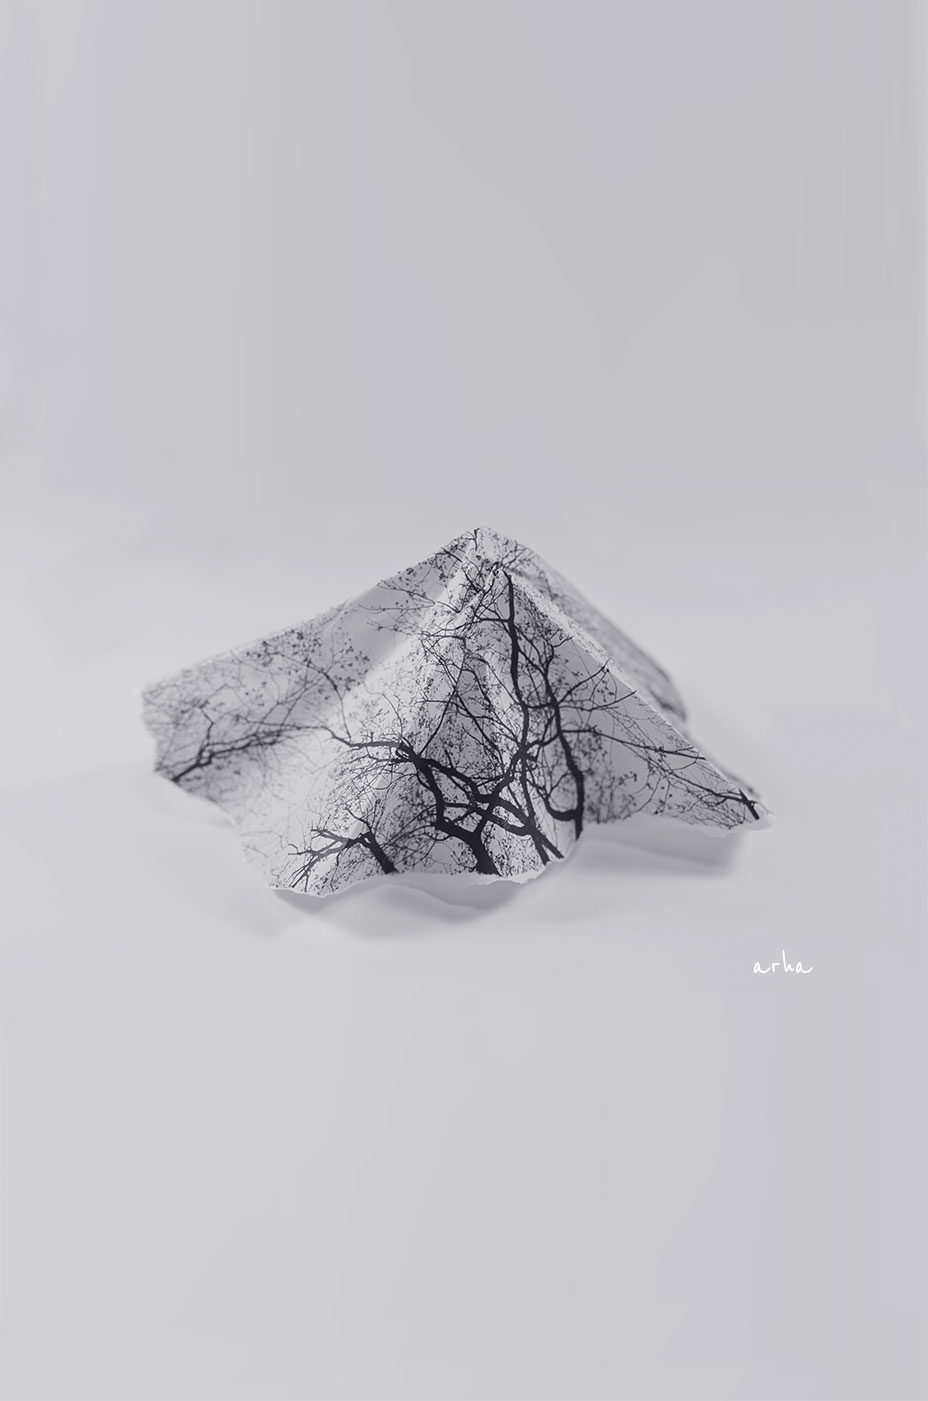 Little-mountain-copyright-2012-arha-Tomomichi-Morifuji